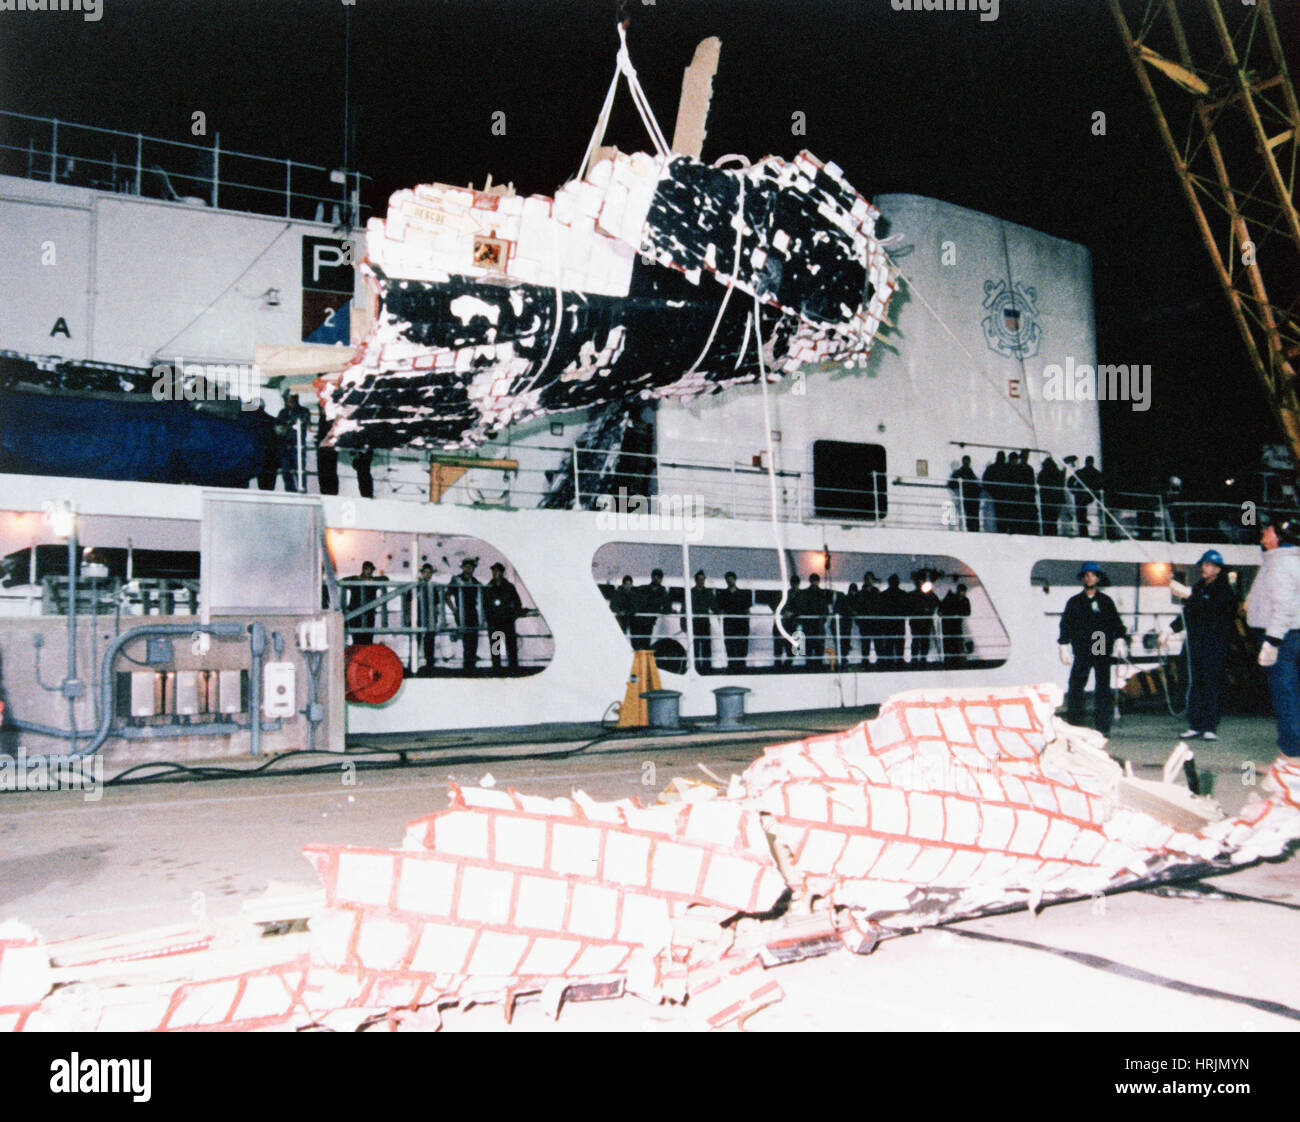 space shuttle challenger wreckage - photo #5